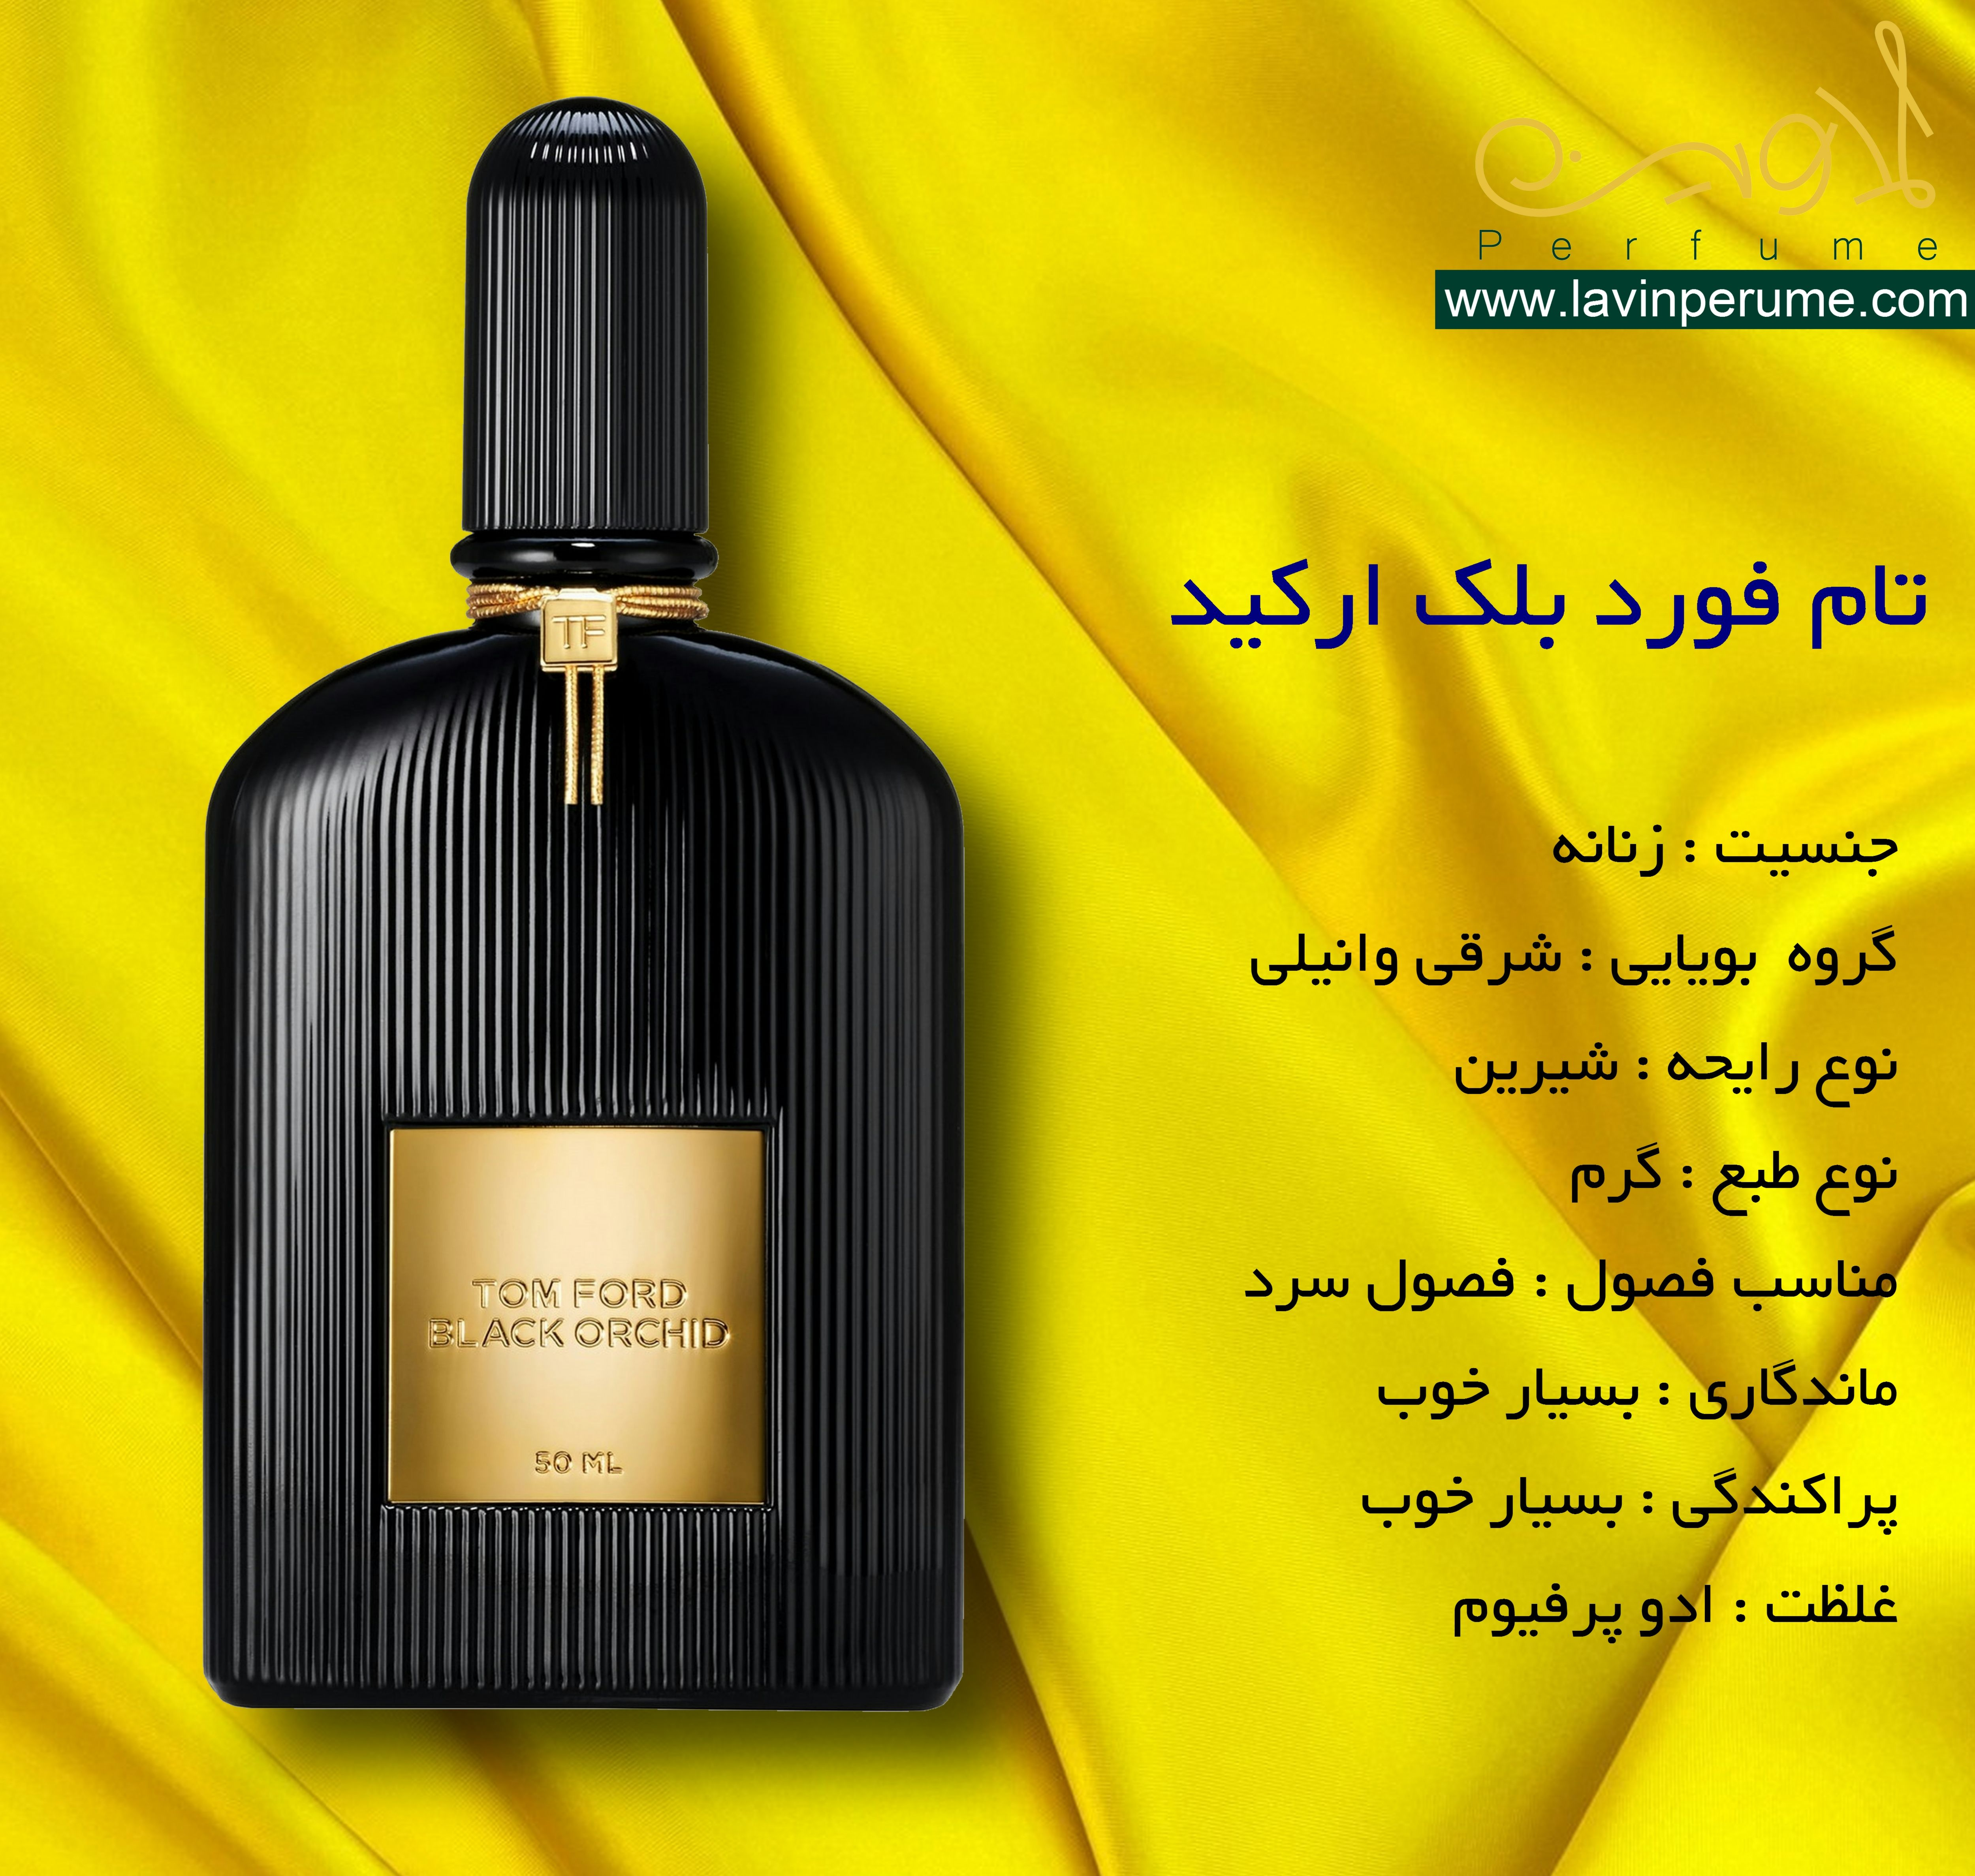 e26db19b2 تام فورد بلک ارکید - Tom Ford Black Orchid | perfume | Perfume ...